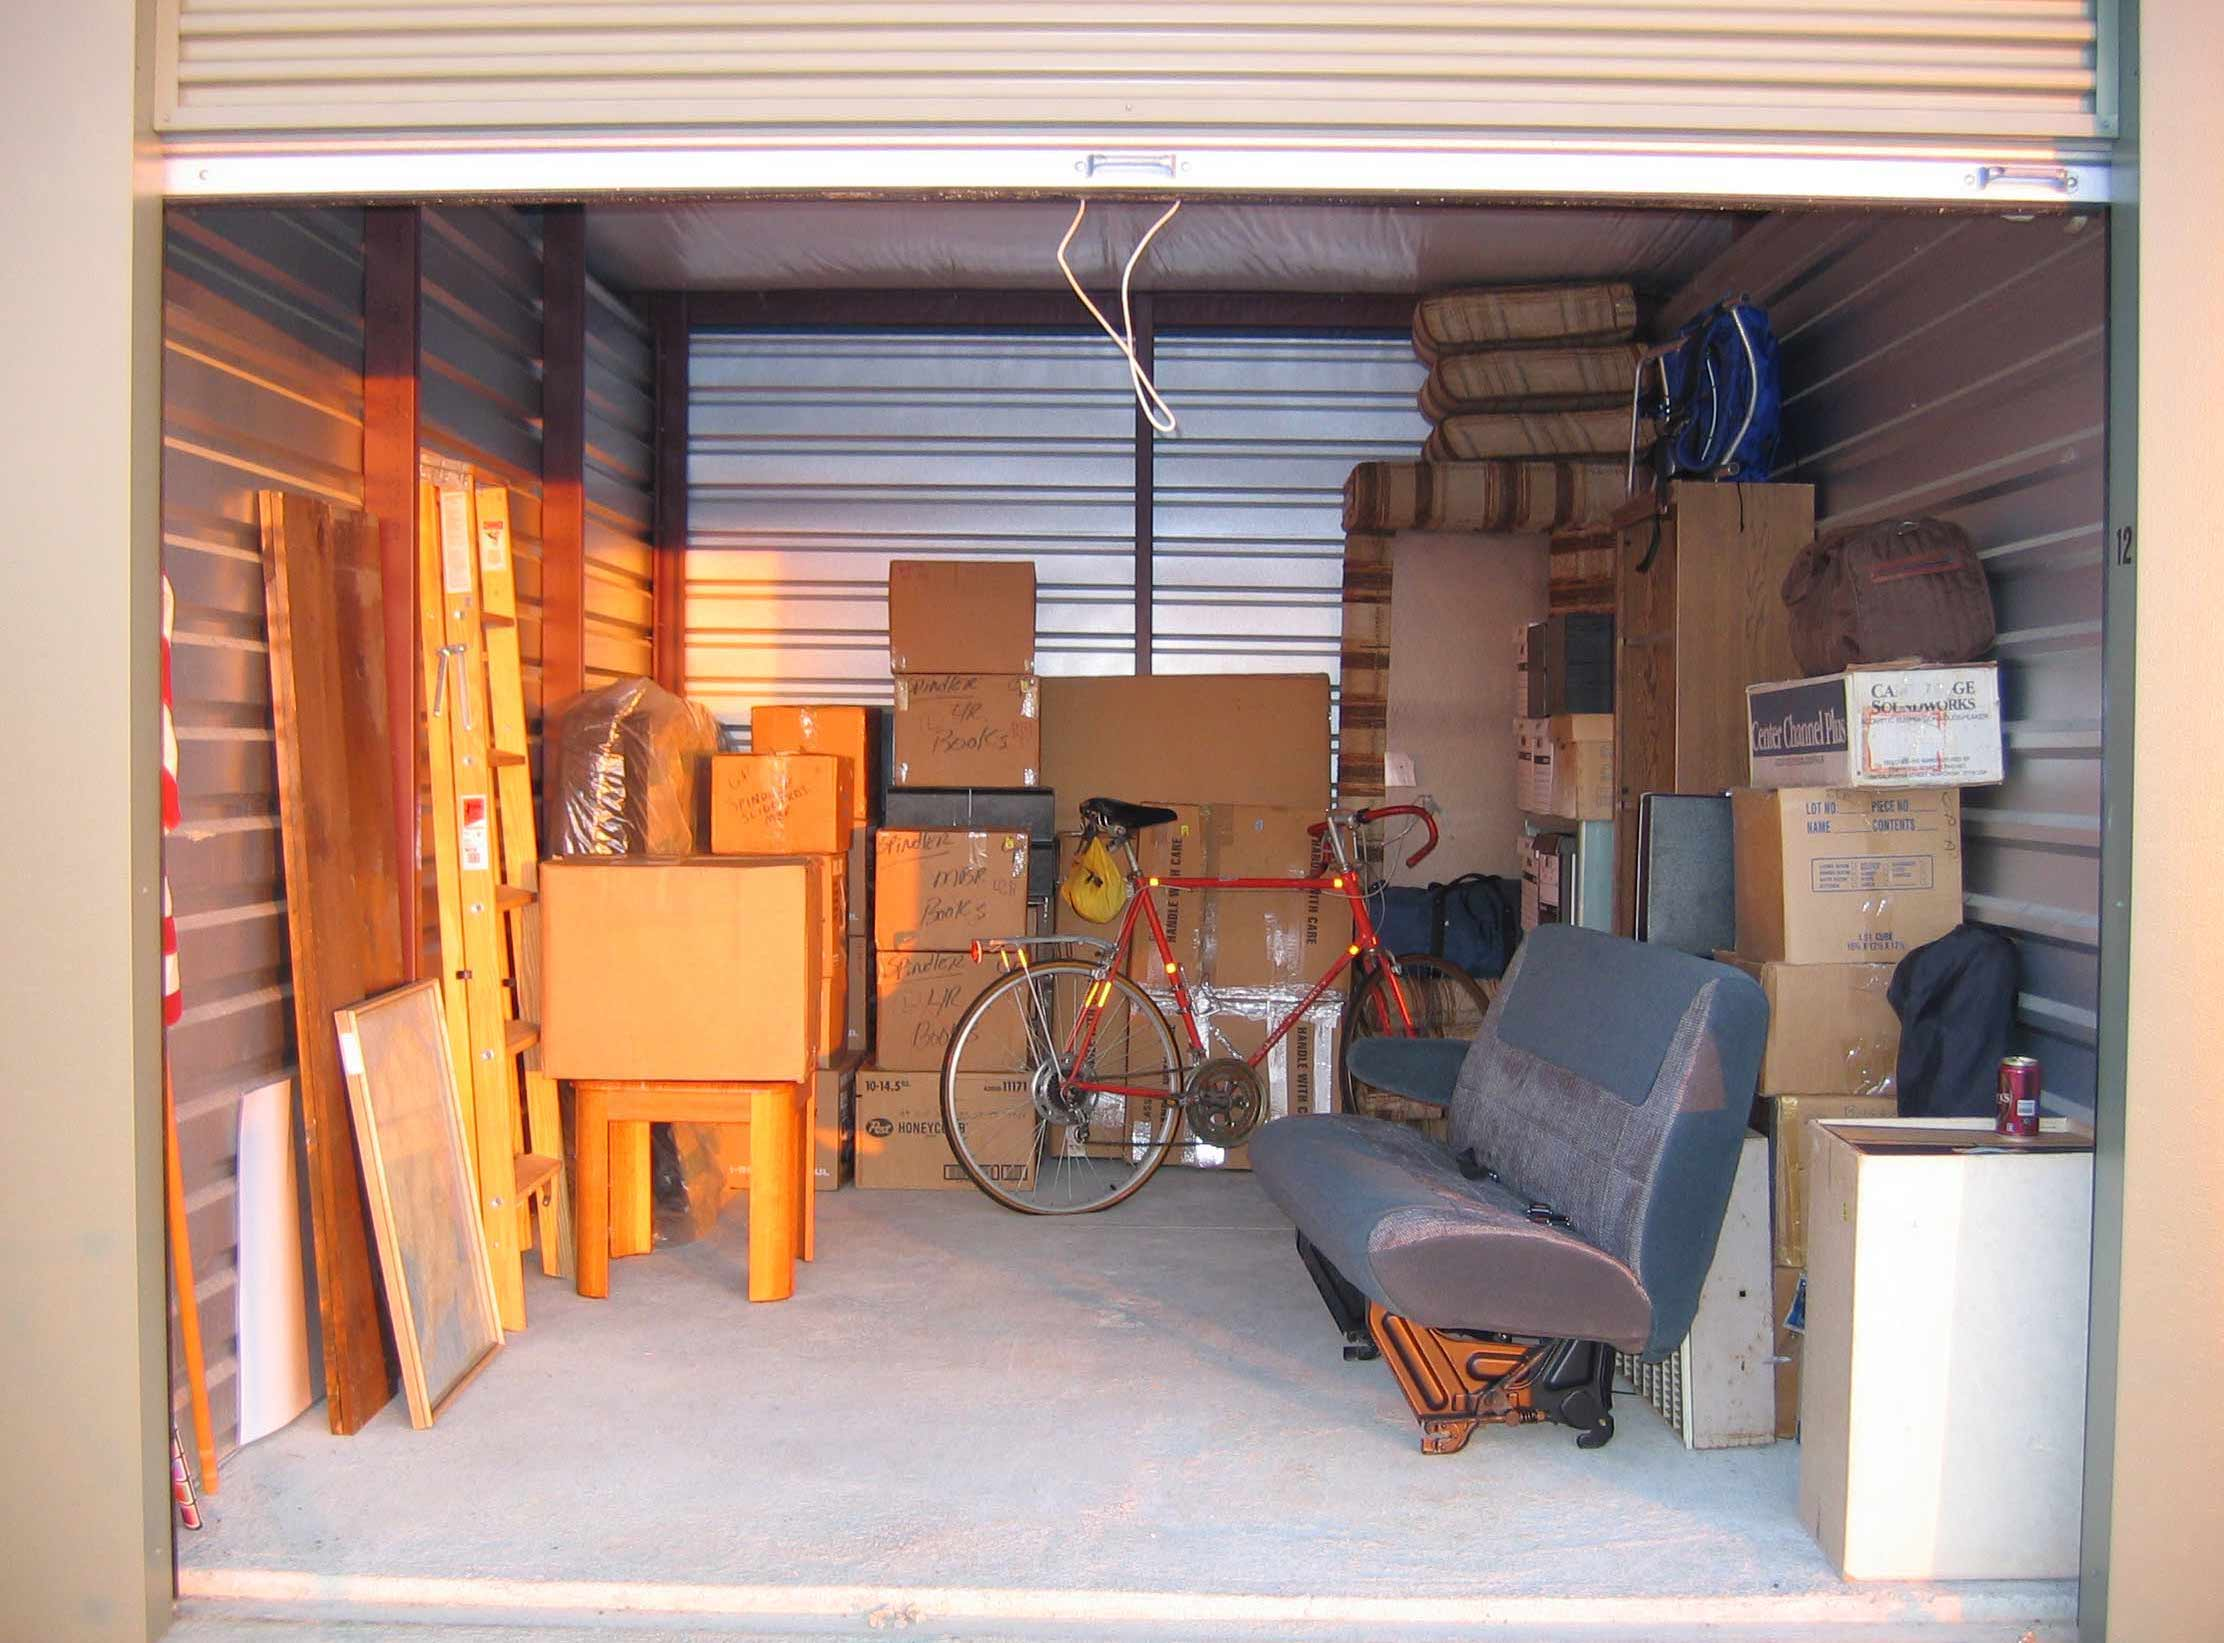 Renting A Selfstorage Unit Vs Buying A Shipping Container. Storage Millersville Md Internet Web Services. Chocolate Chip Cookie Without Brown Sugar. How To Overcome Alcohol Addiction. How To Become A English Teacher. Industrial Keyboard Tray Bank Account Details. Asia Outsourcing Services Need Home Insurance. Payroll Systems For Small Businesses. Best Free Hosting Website Carrier Hvac Repair